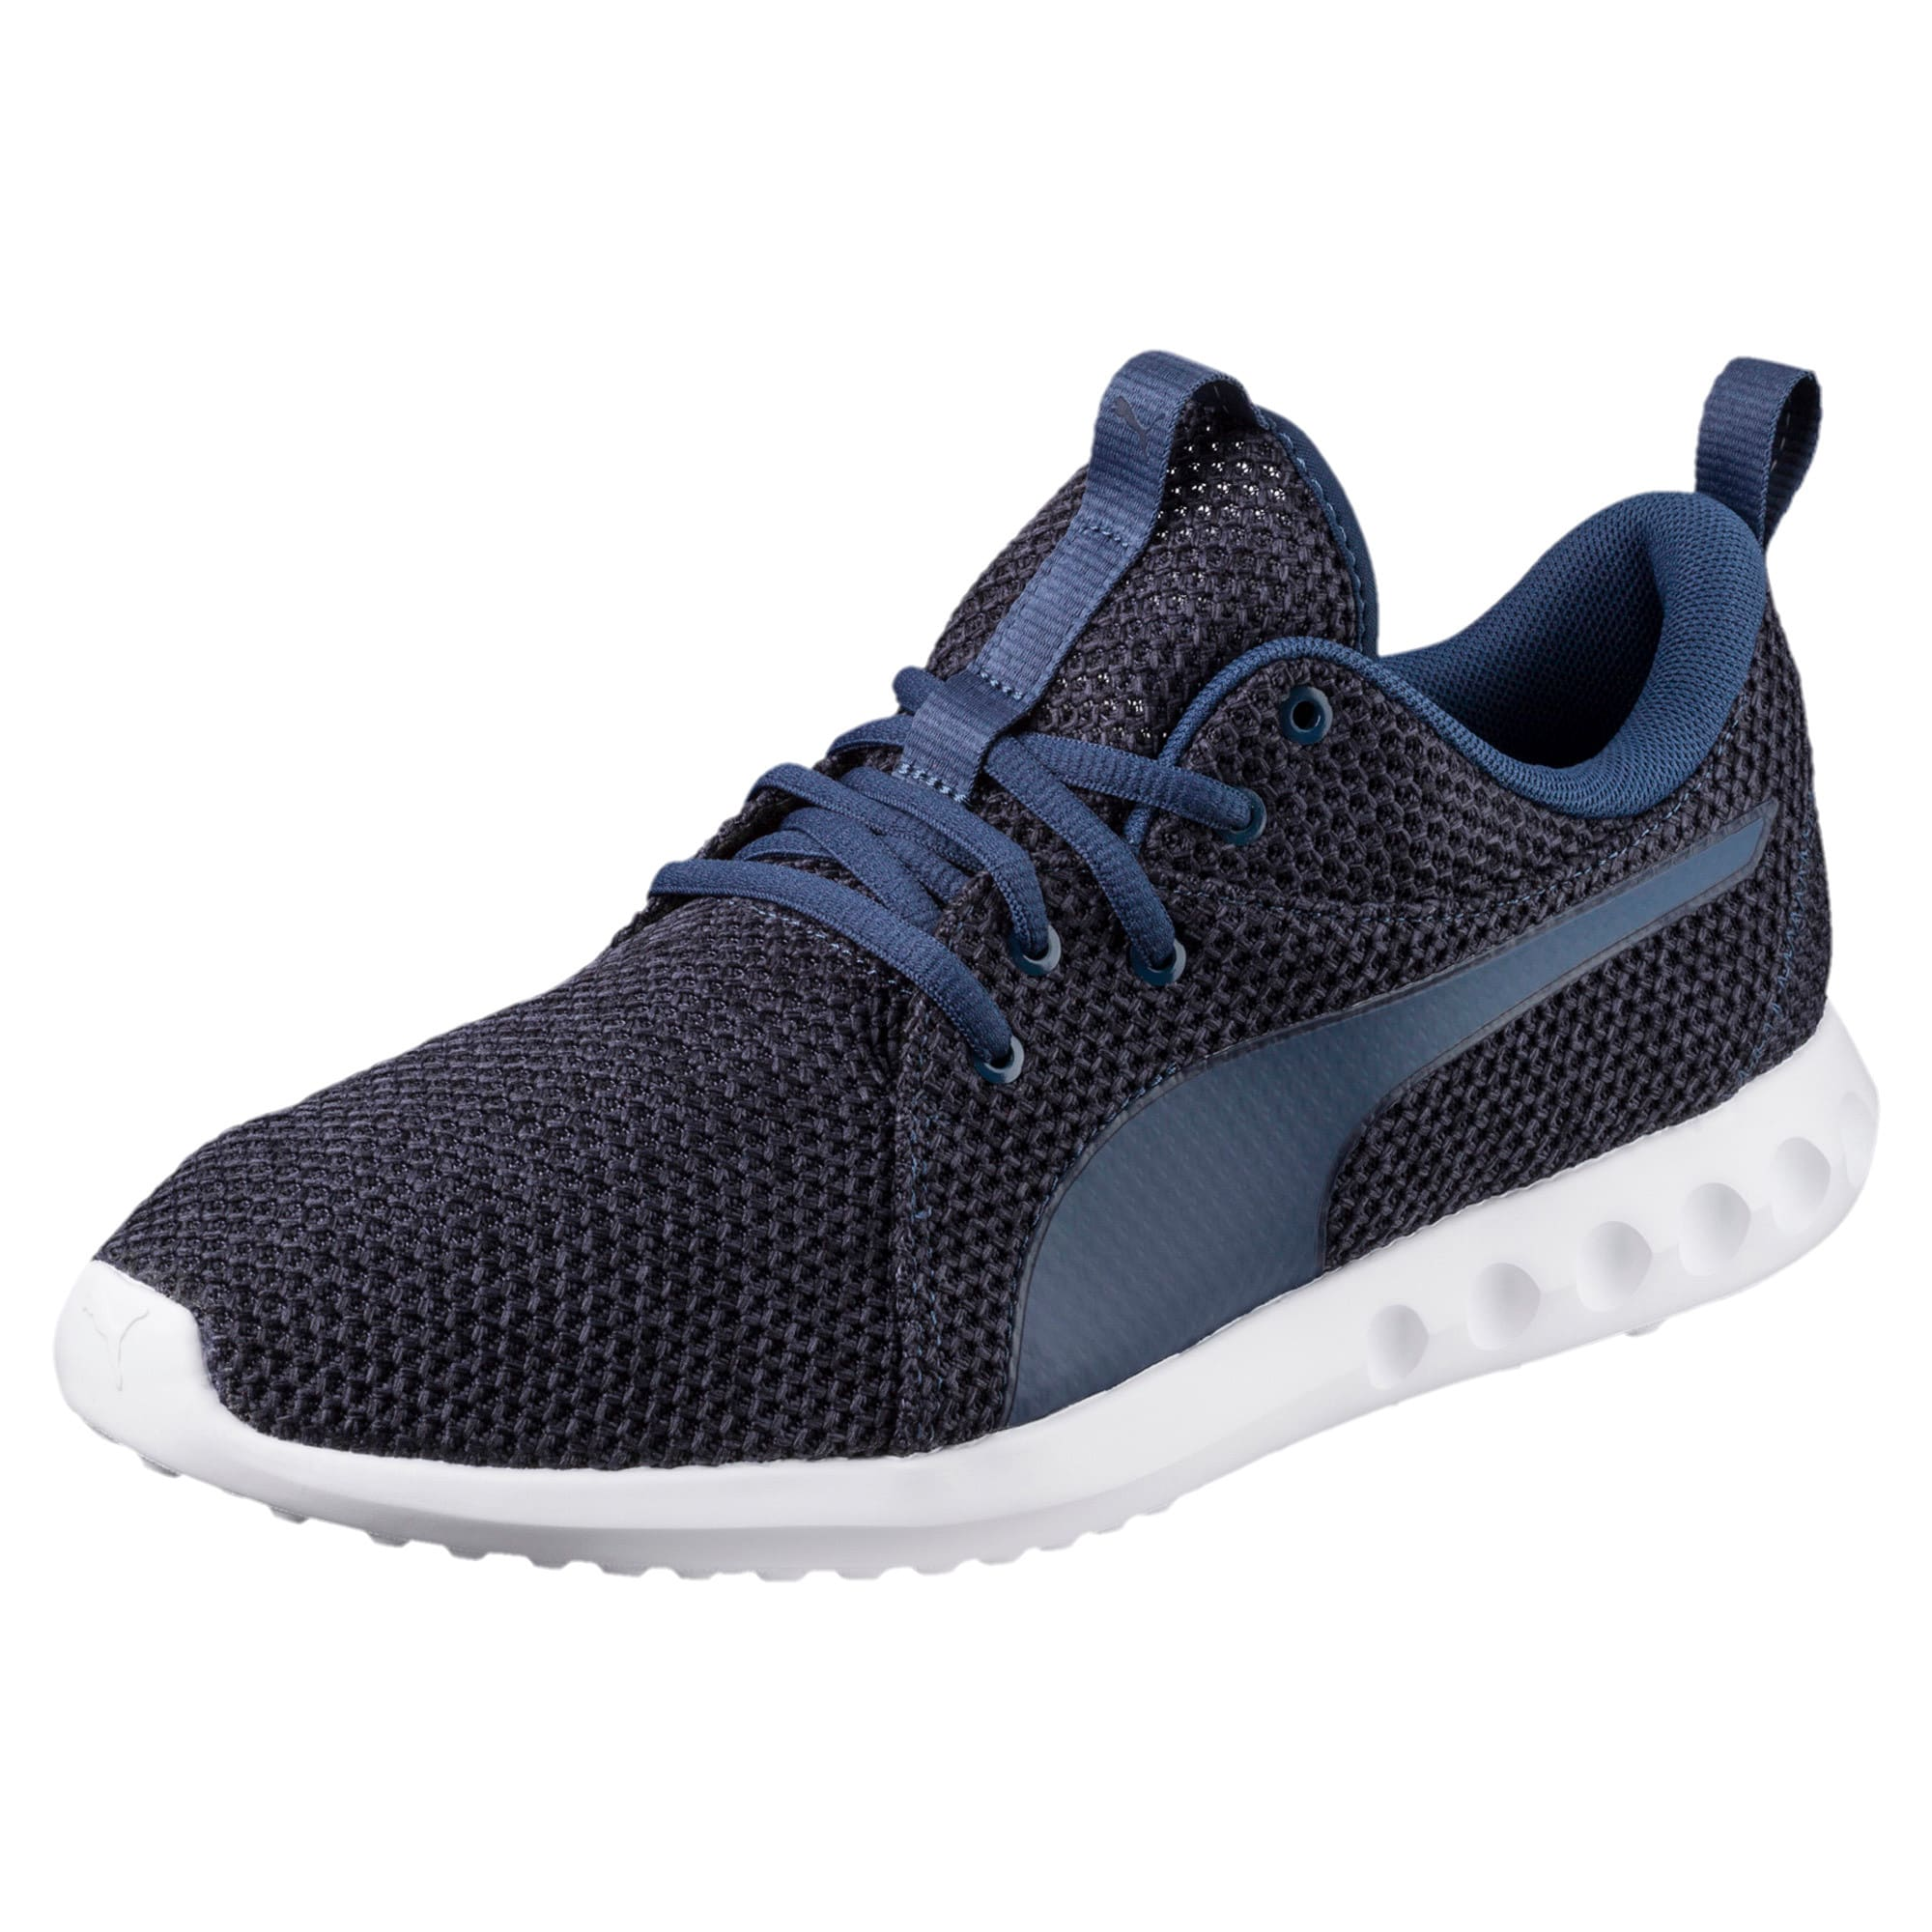 Thumbnail 1 of Carson 2 Nature Knit Men's Trainers, Sargasso Sea-Peacoat, medium-IND